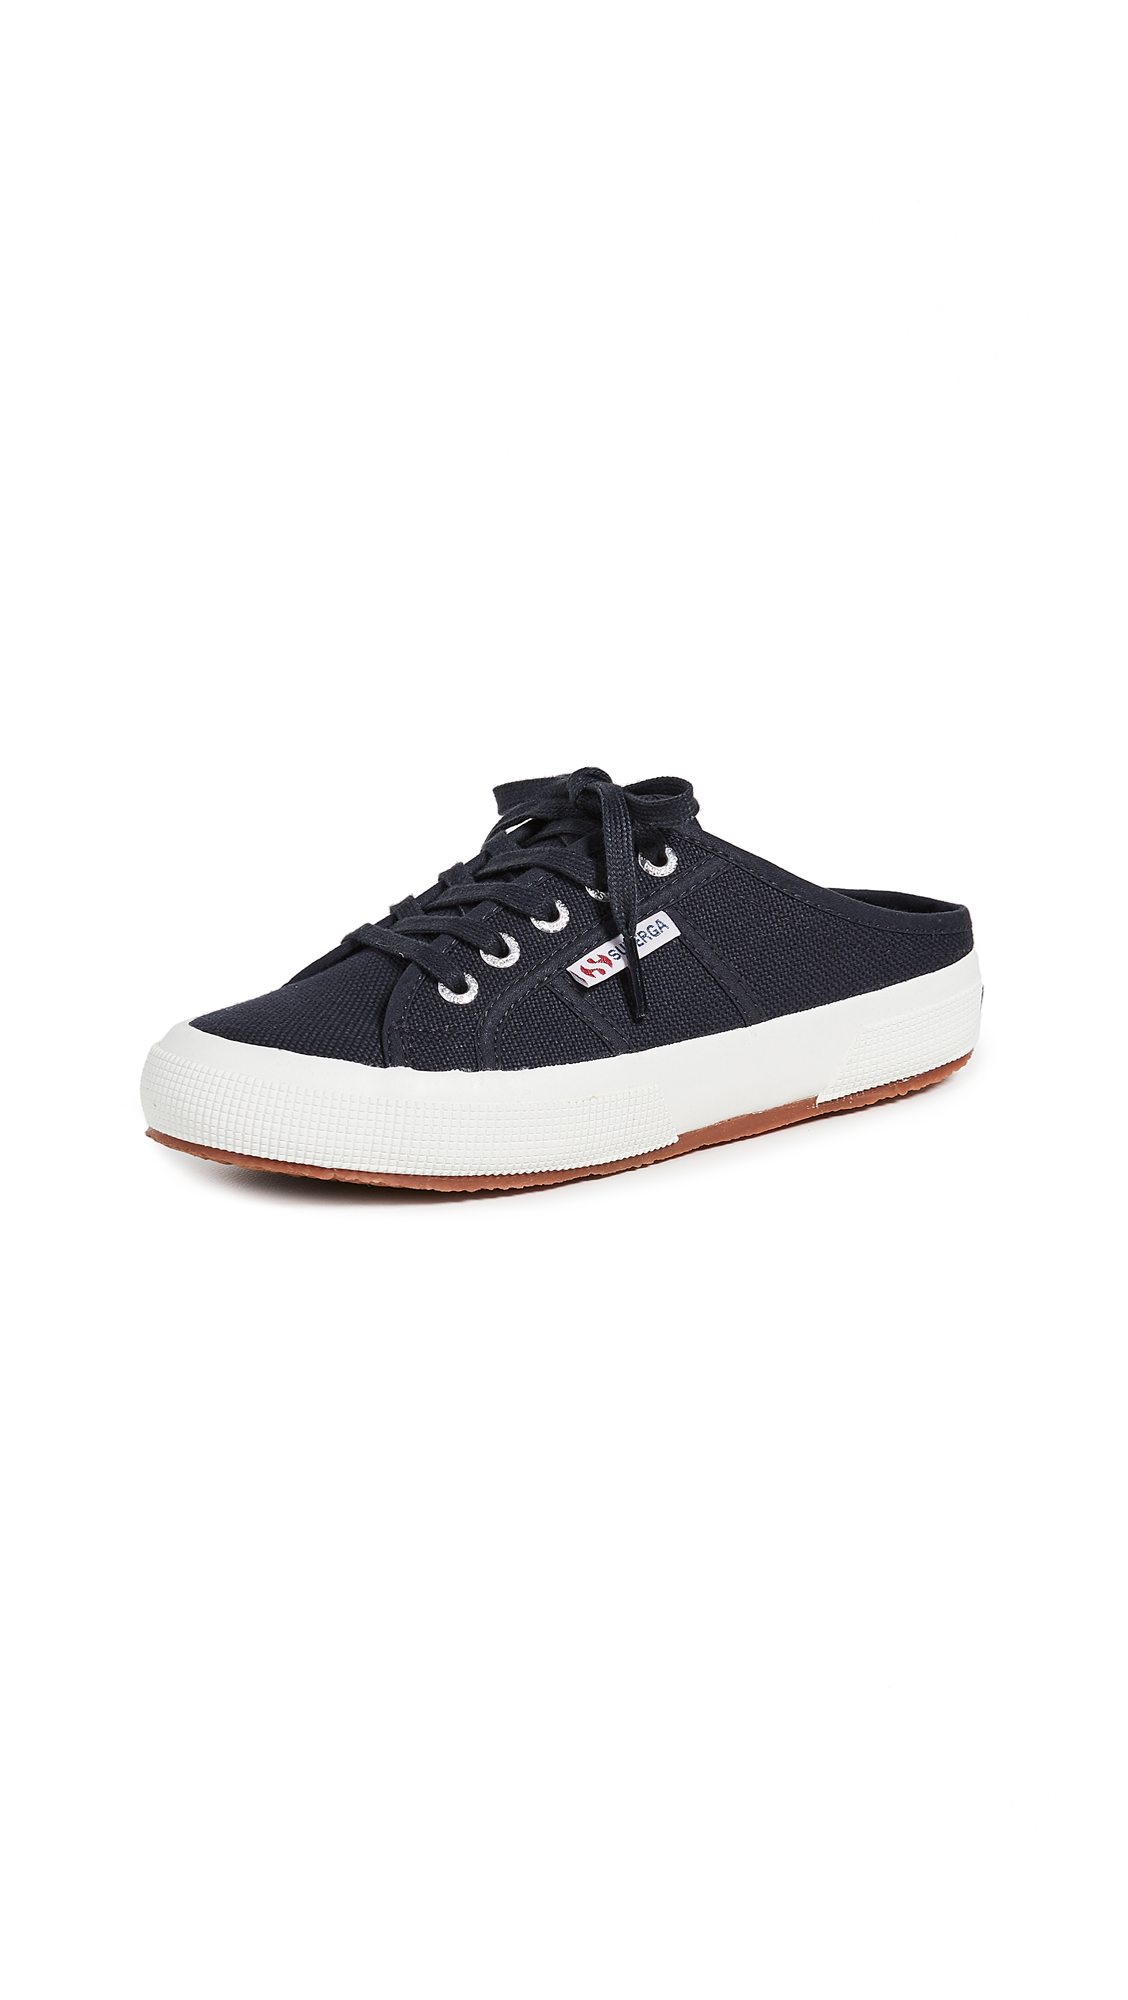 Superga 2551 Cotu Mule Sneakers - Blue Graphite